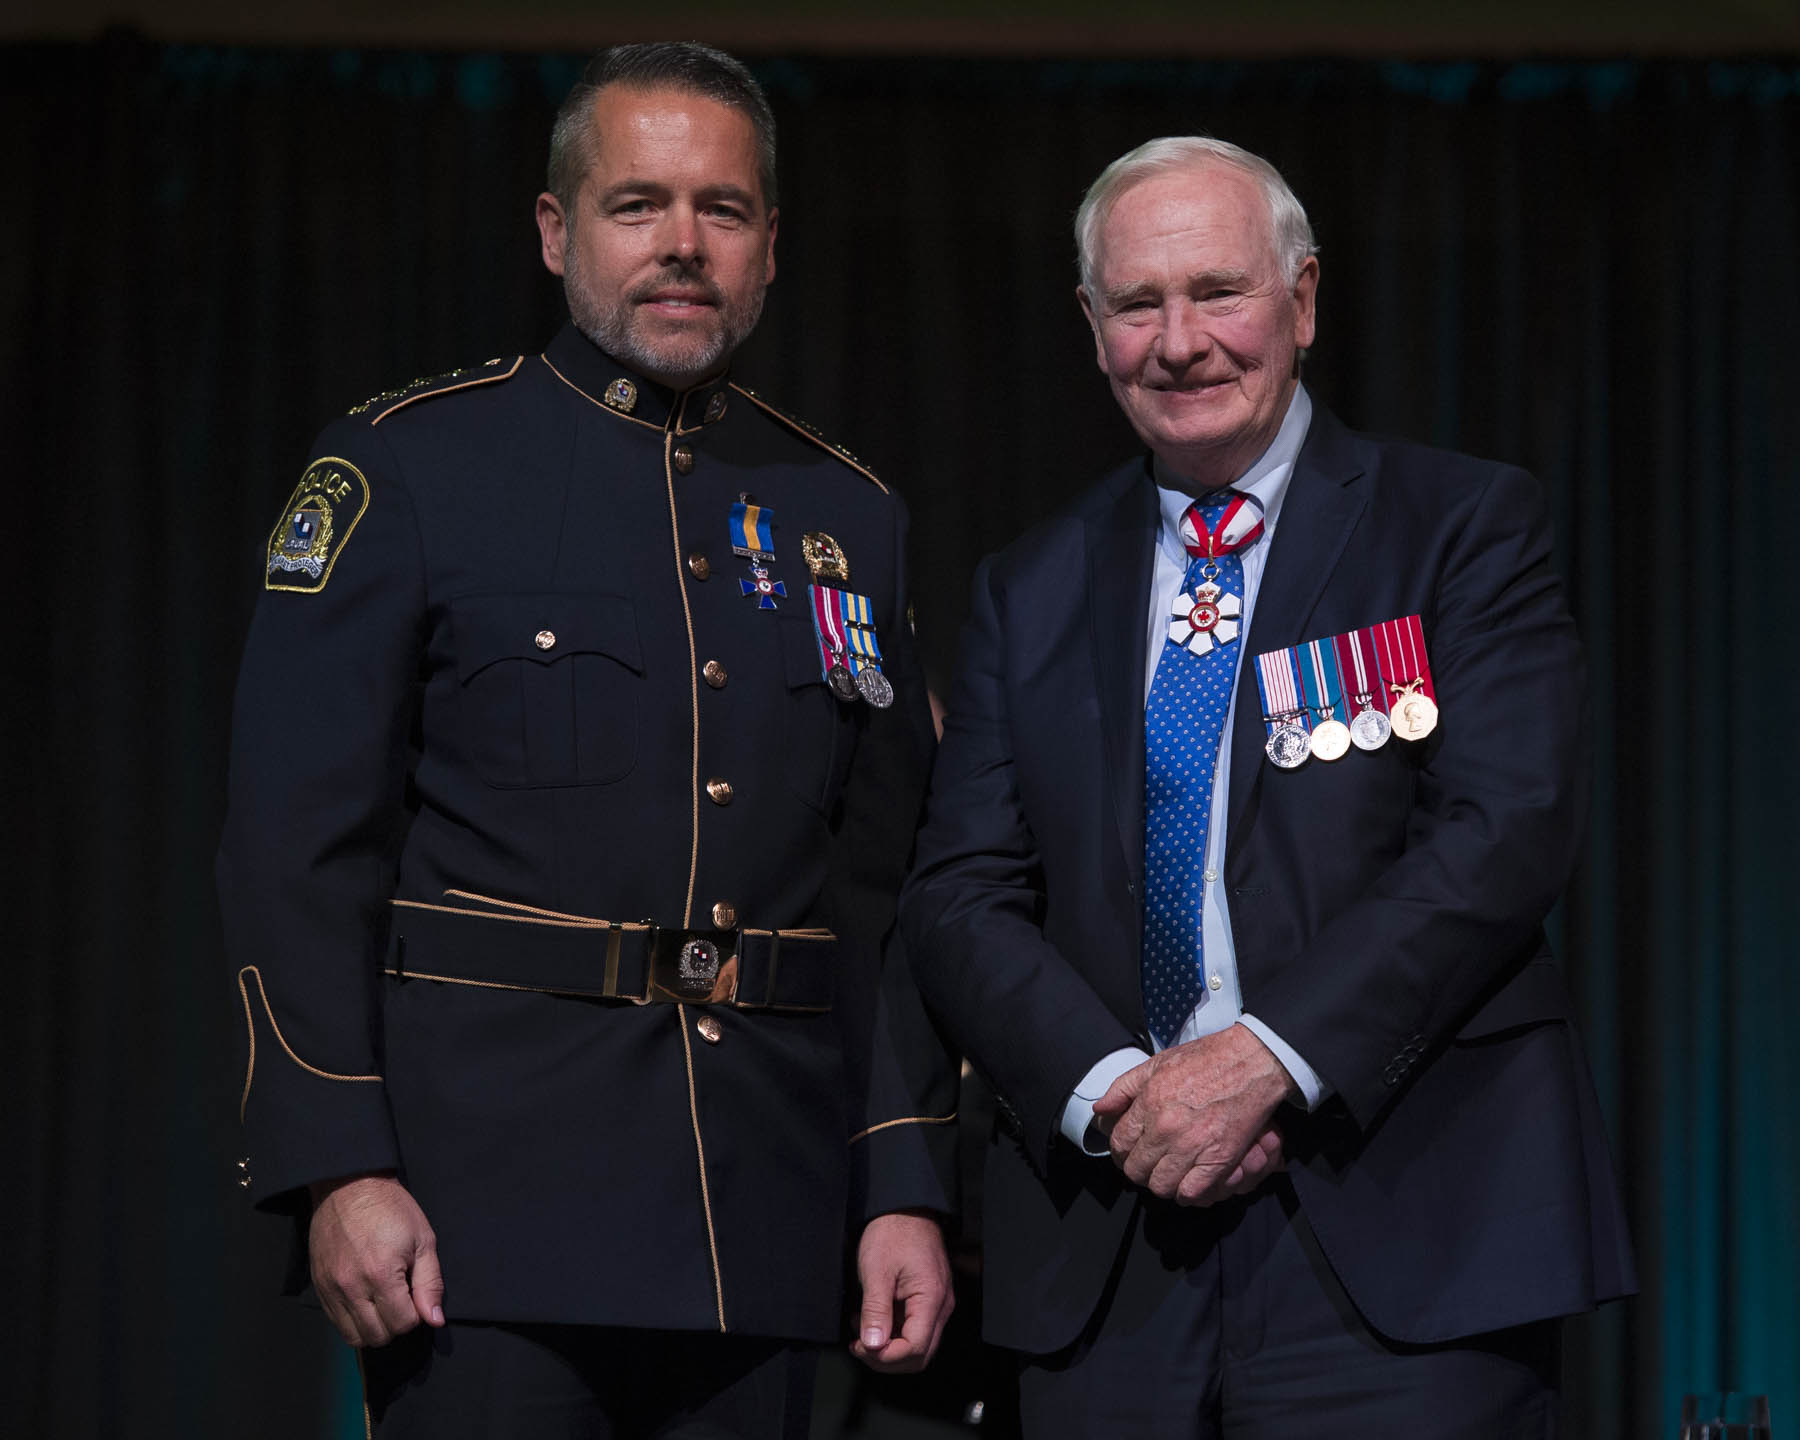 His Excellency presented the Order of Merit of the Police Forces to Director Pierre Brochet, M.O.M. For his leadership in enhancing operational procedures and crime prevention strategies for the Laval police service, and for his multi-faceted approach to supporting community initiatives throughout his province.